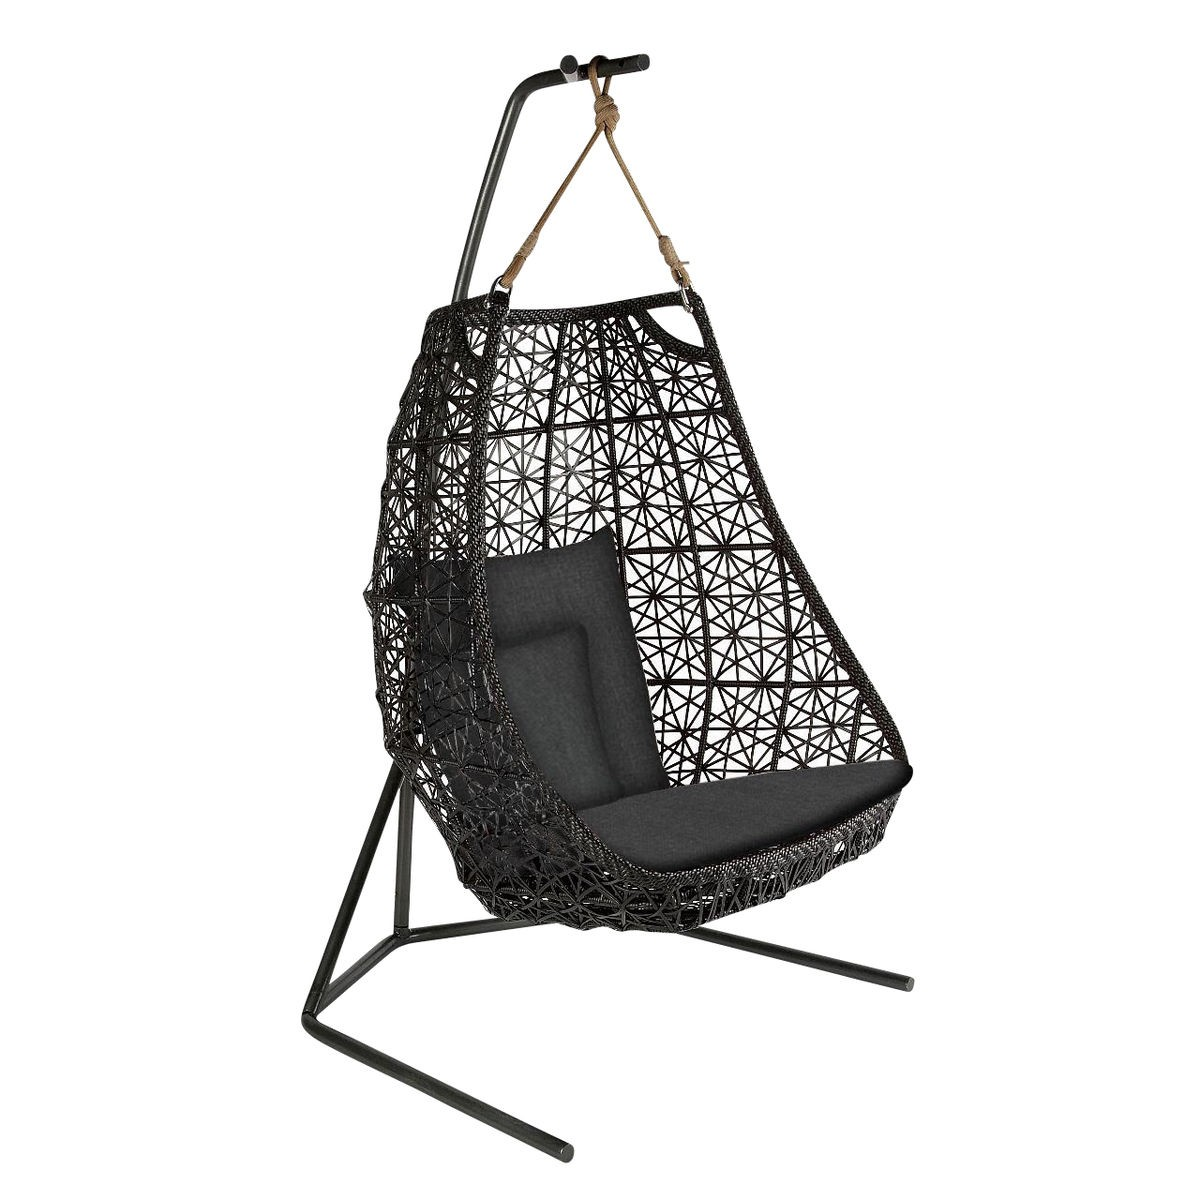 Cool Kettal Maia Egg Swing Chair Van Der Donk Interieur Frankydiablos Diy Chair Ideas Frankydiabloscom